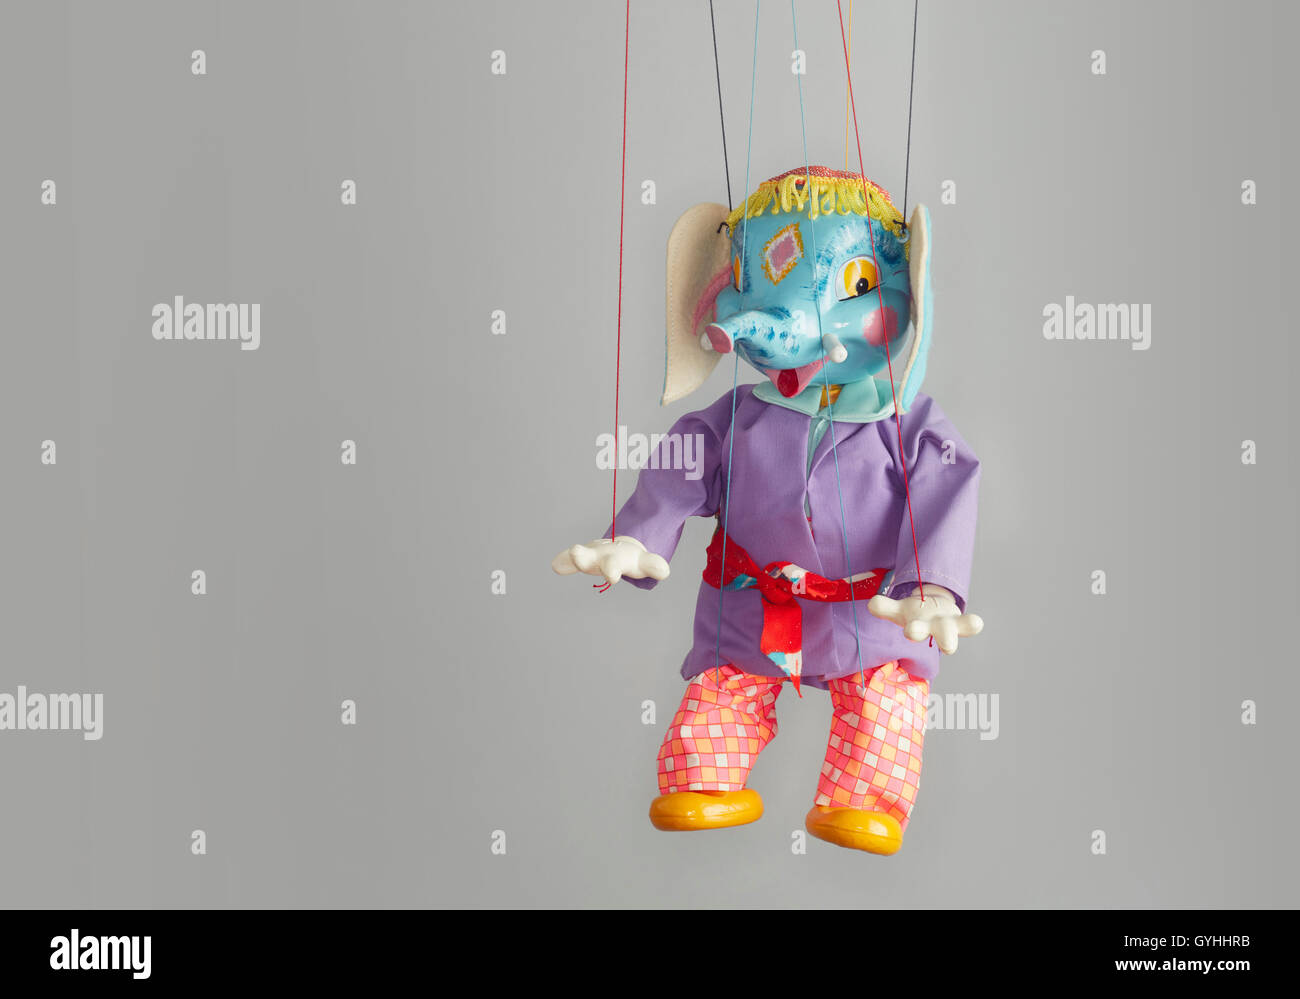 Puppet Hanging Stock Photos & Puppet Hanging Stock Images - Alamy